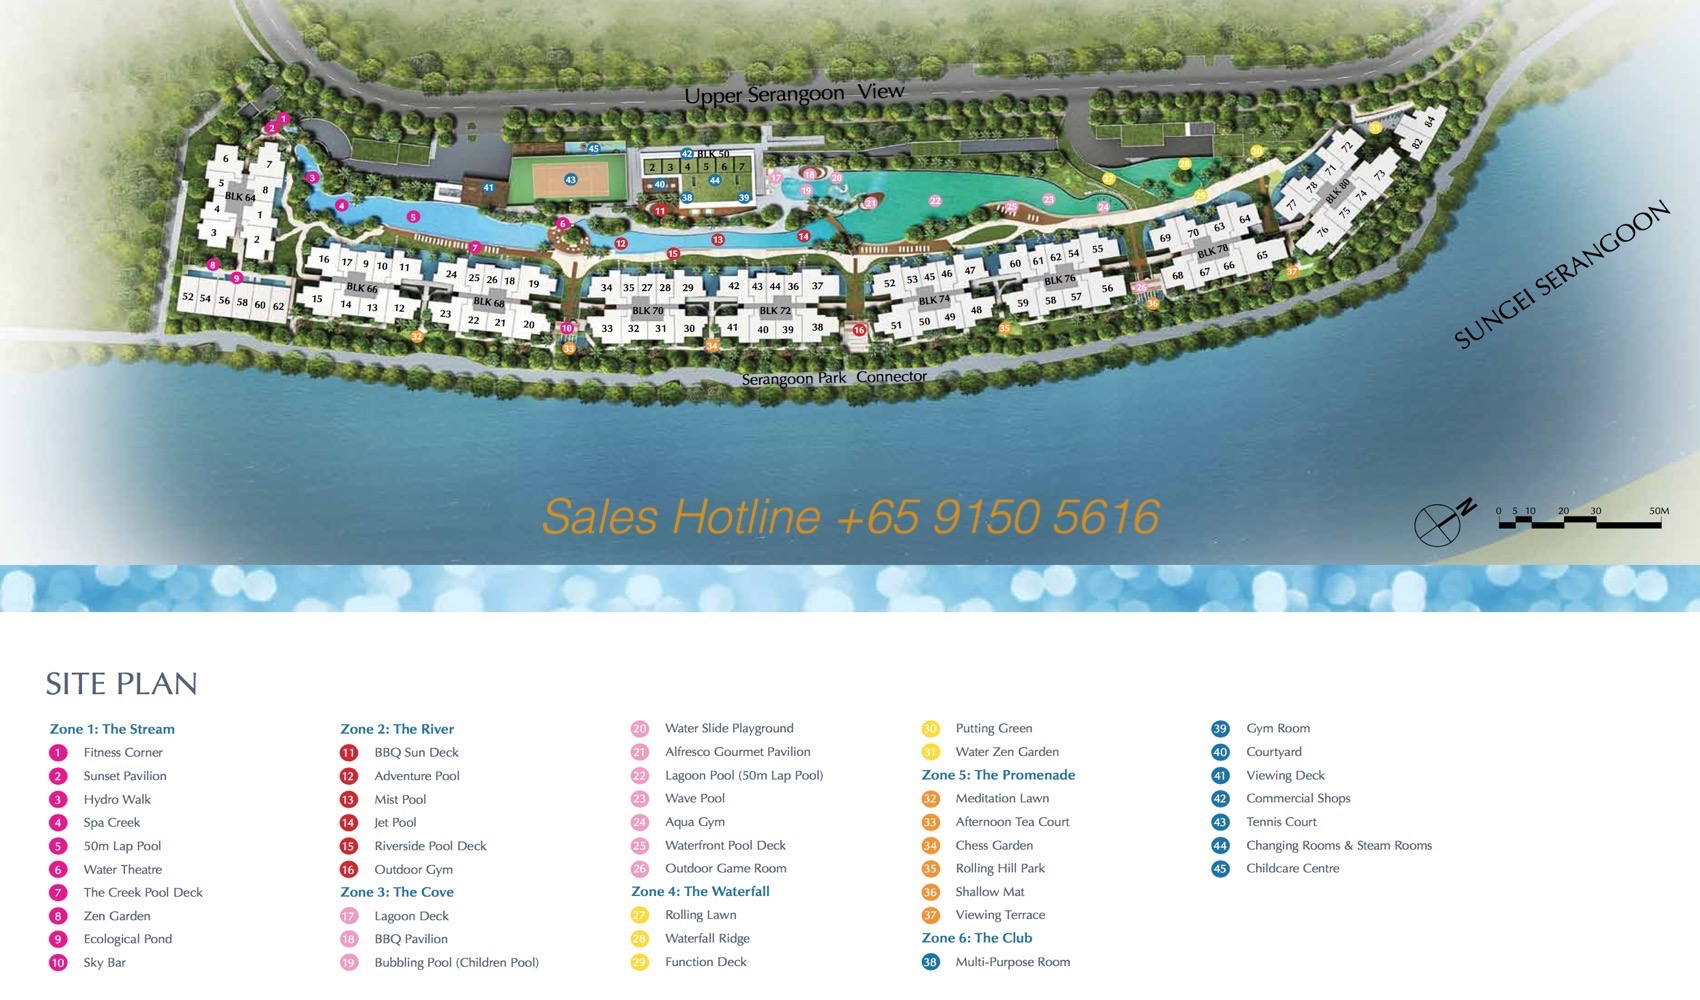 Kingsford Waterbay - Site Plan